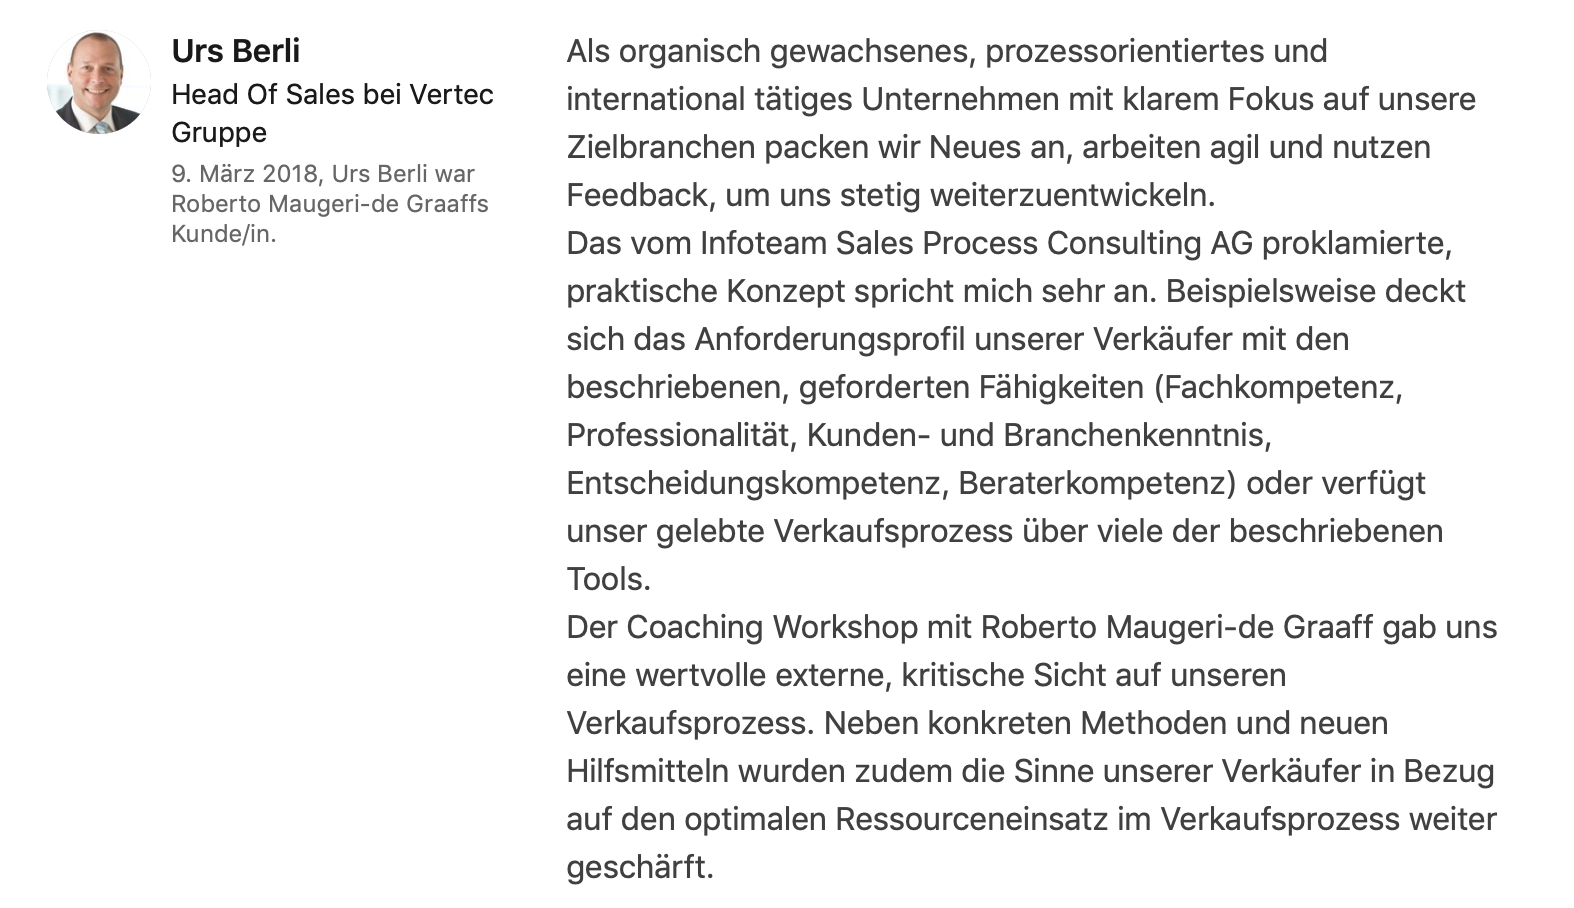 Testimonial Urs Berli, Head of Sales bei Vertec